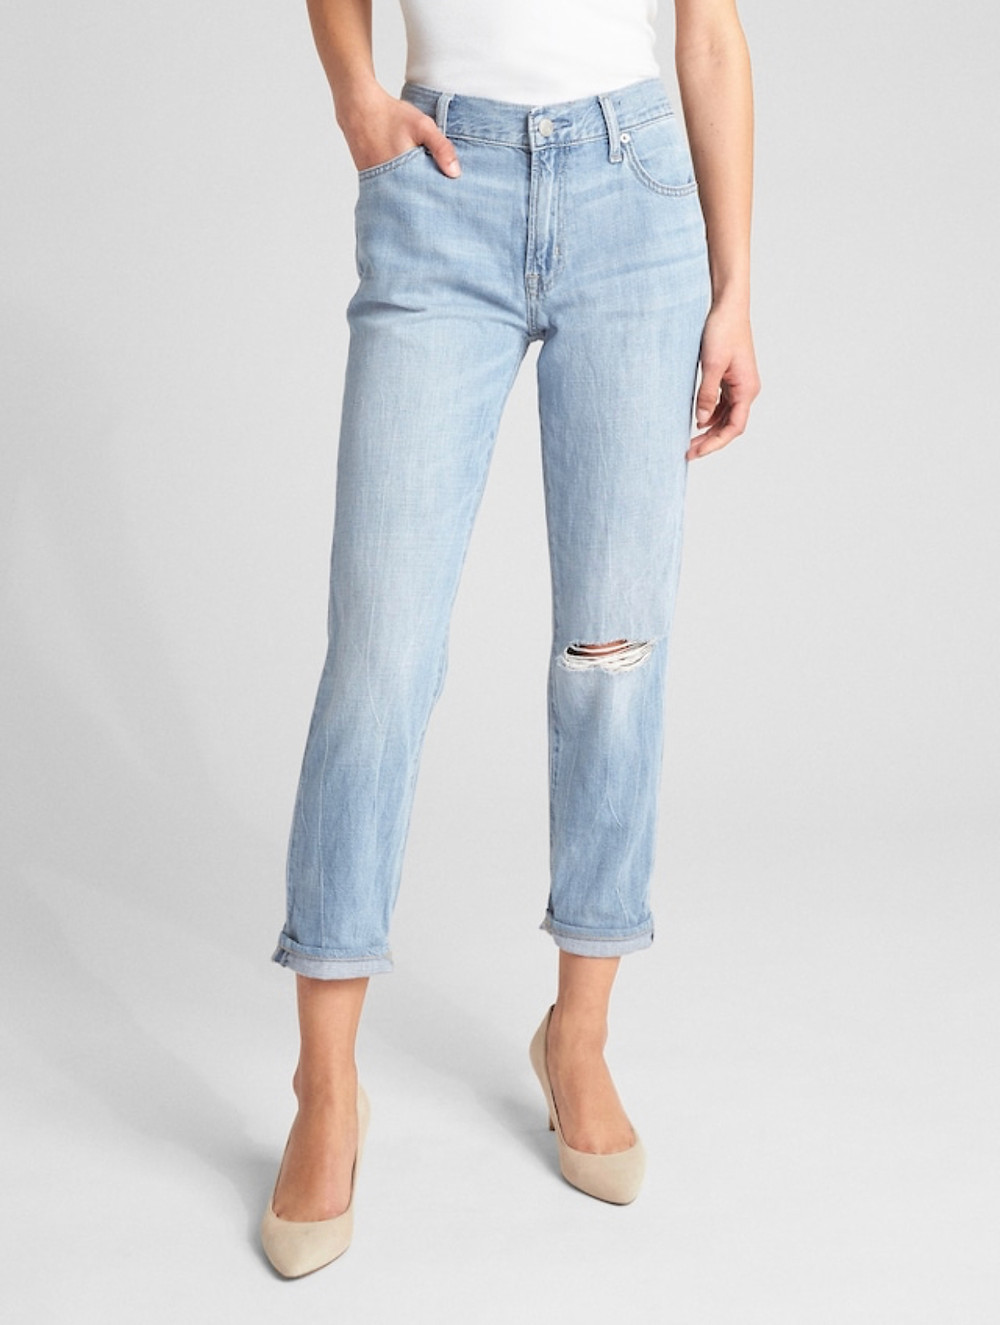 Wearlight Mid Rise Best Girlfriend Jeans Gap